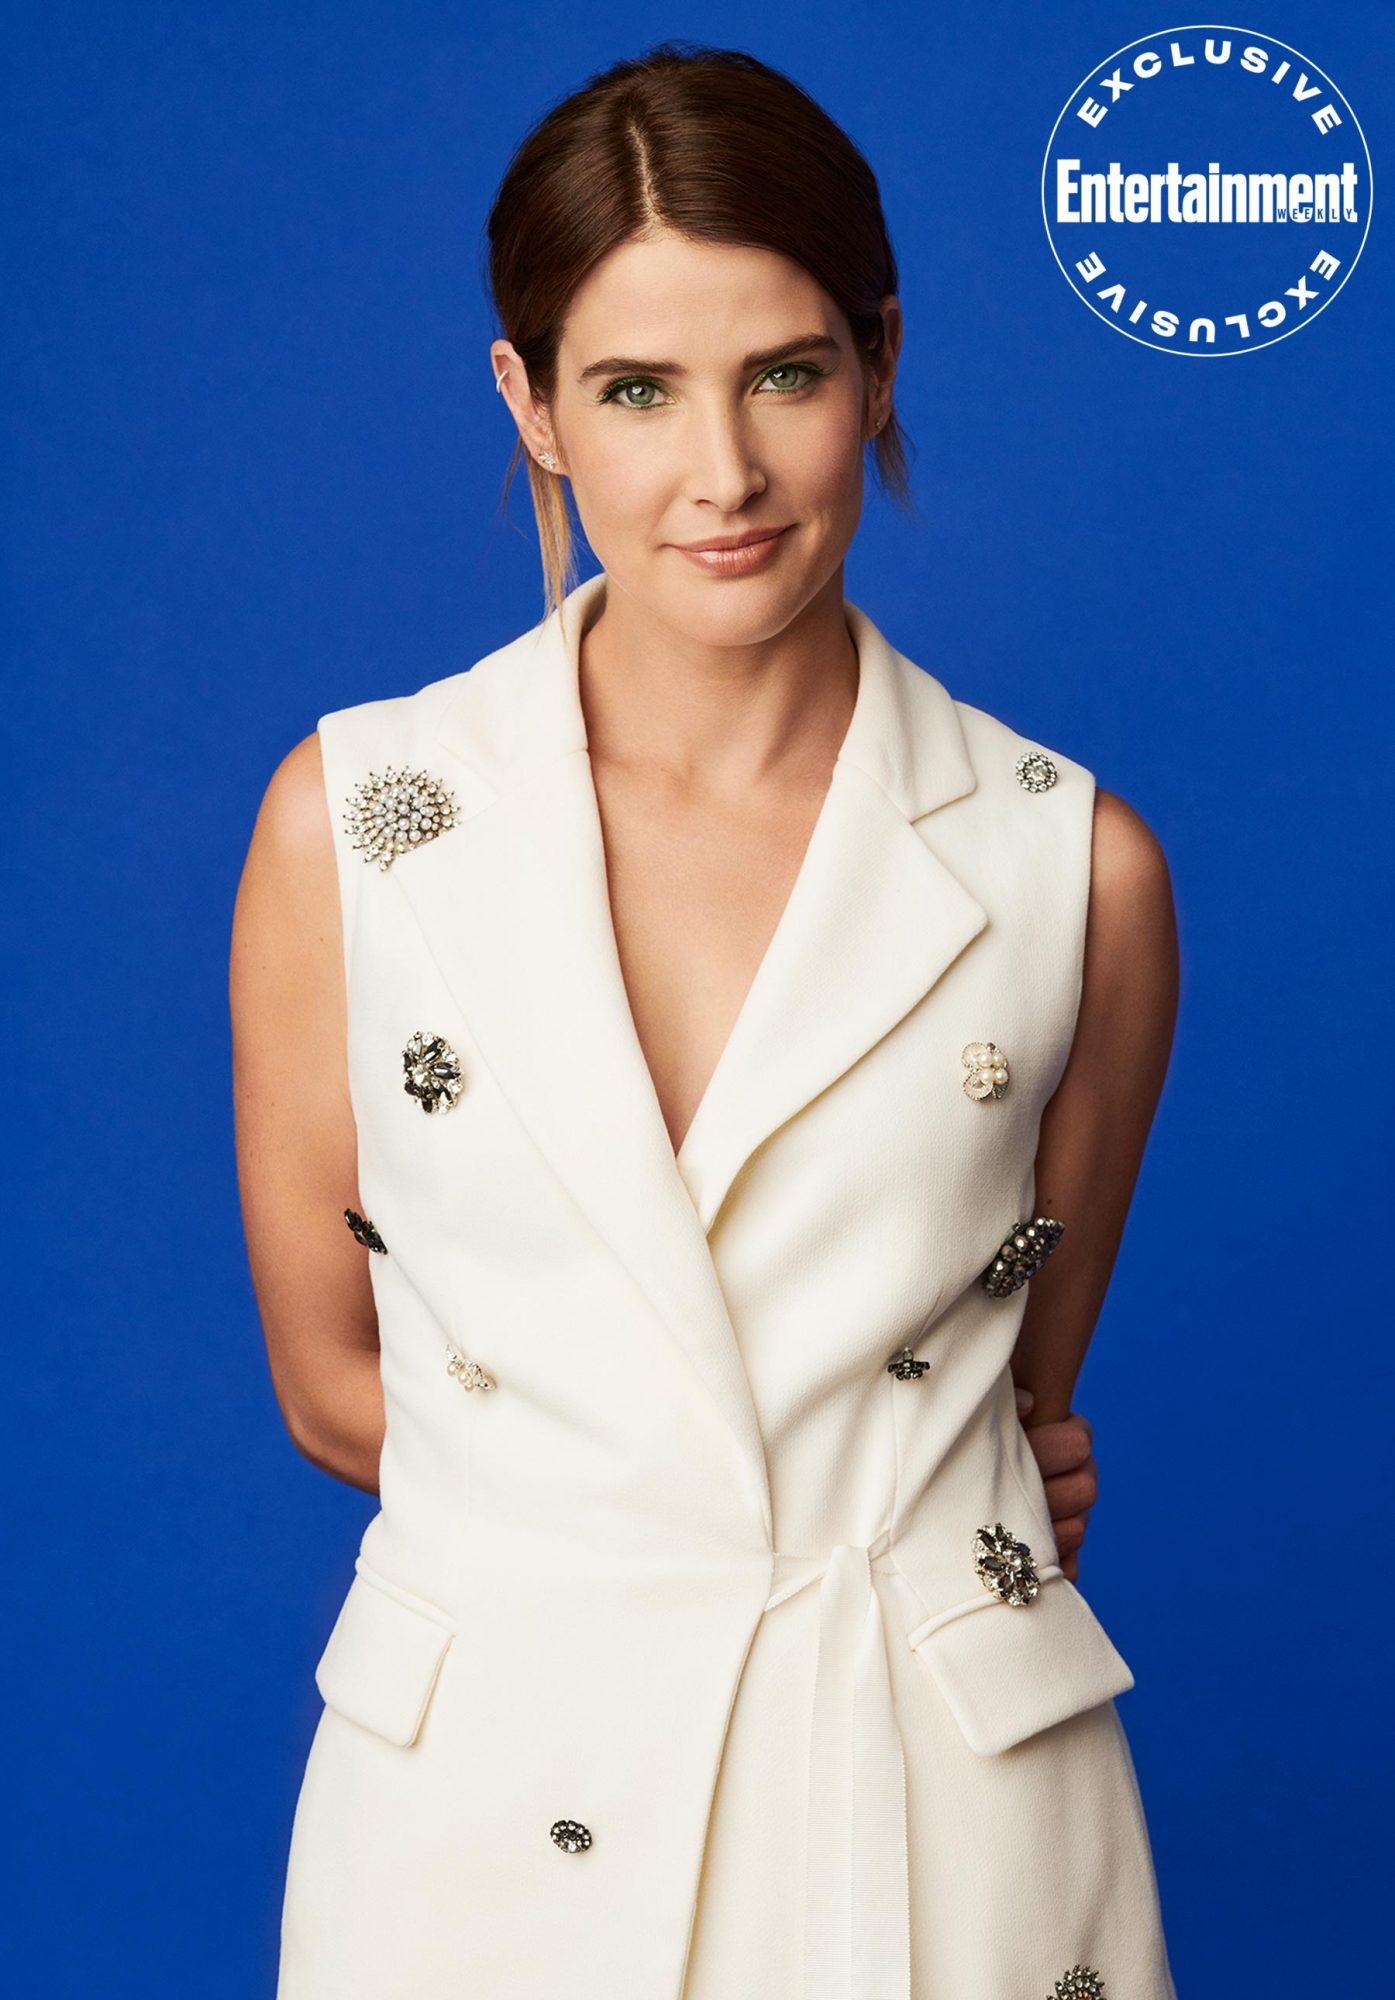 Cobie Smulders shot exclusively for EW